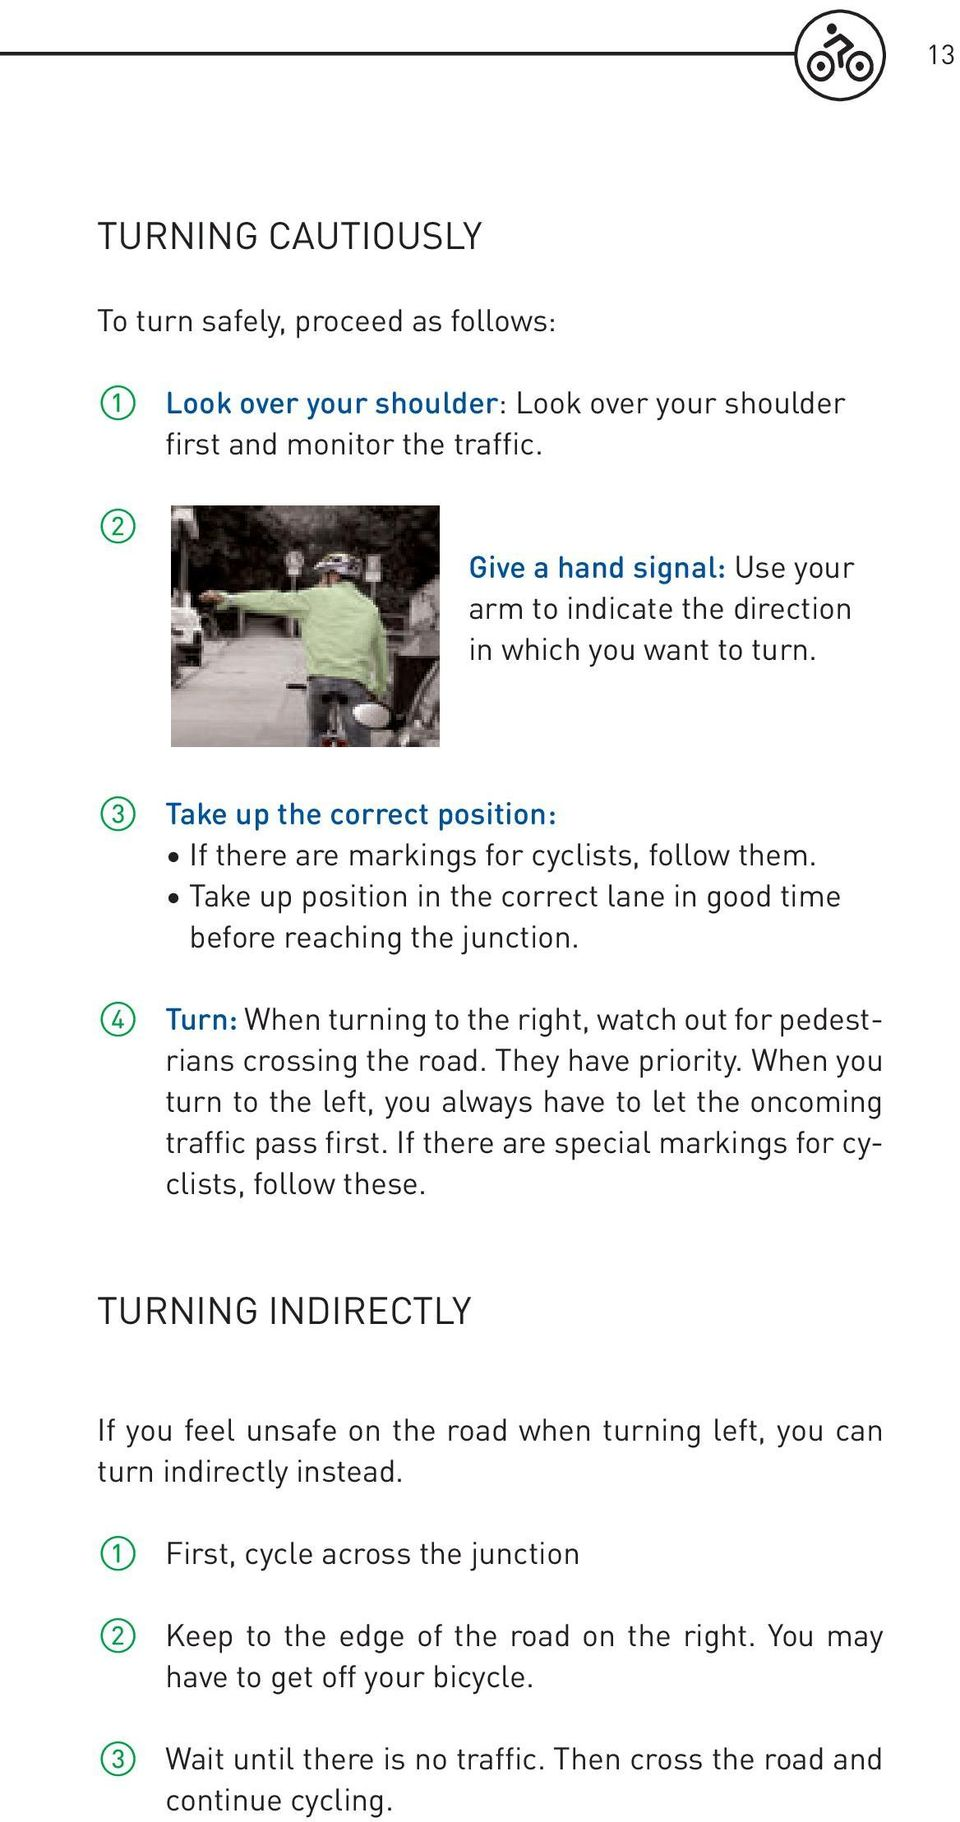 Take up position in the correct lane in good time before reaching the junction. ➃ Turn: When turning to the right, watch out for pedestrians crossing the road. They have priority.